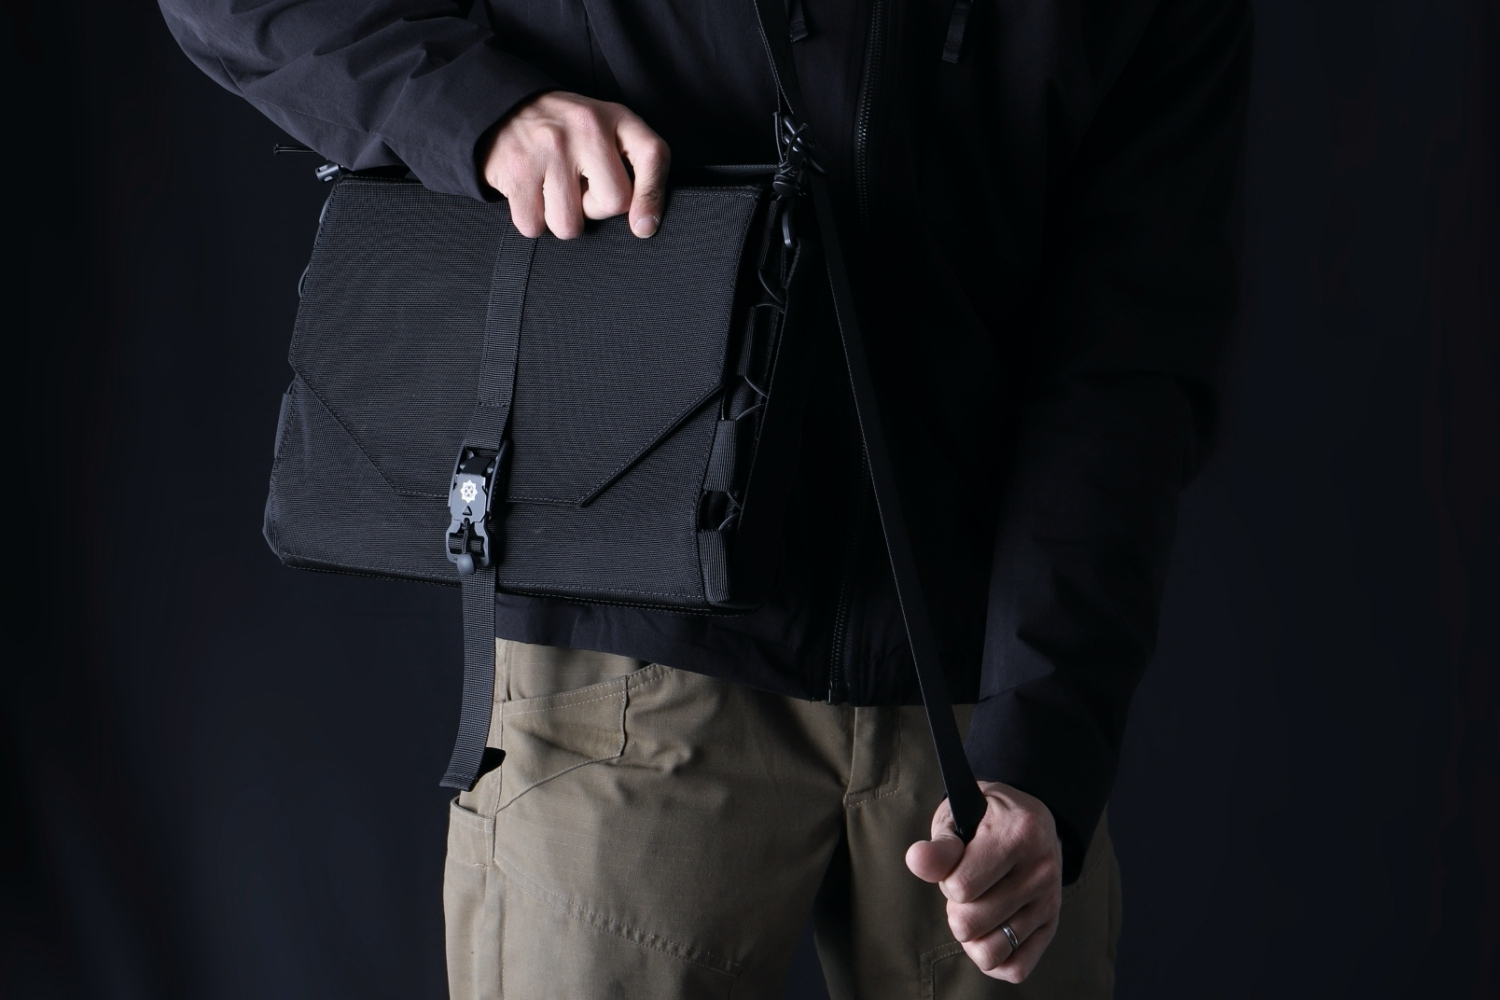 TTGD Stealth Business Bag